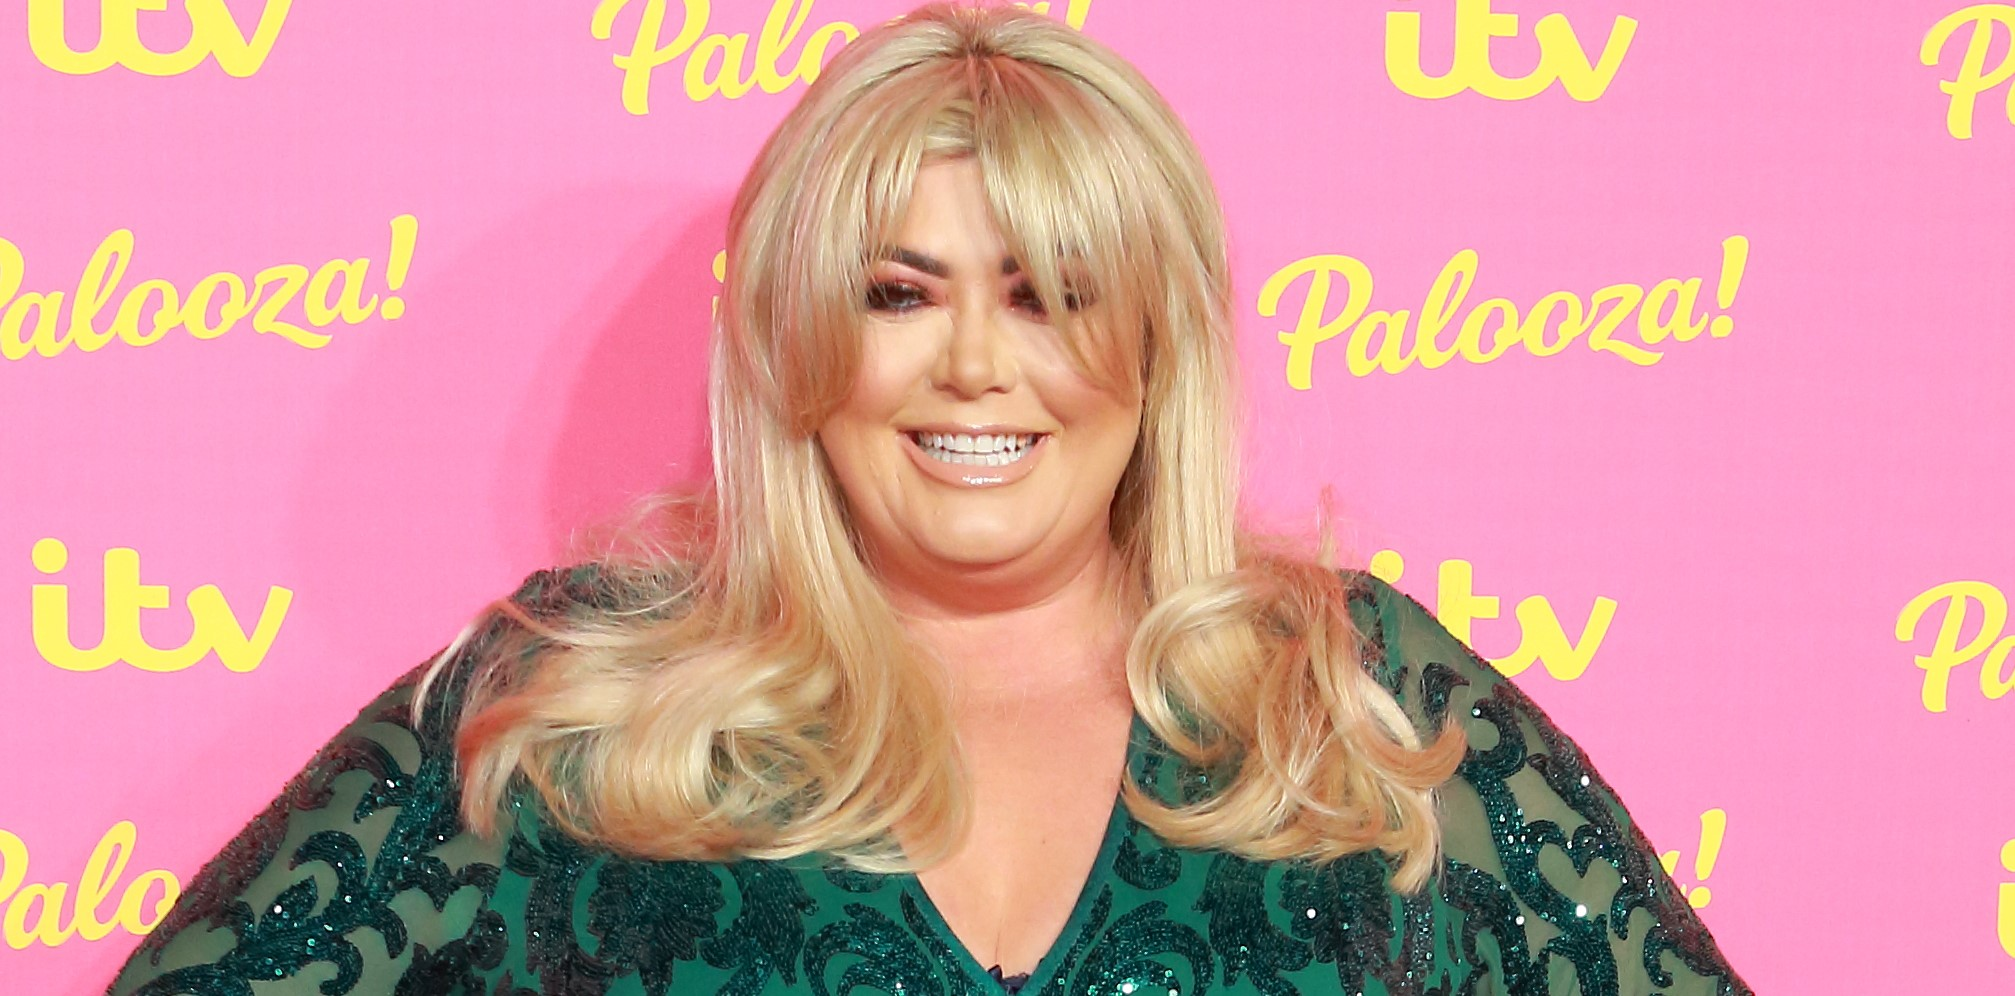 Gemma Collins issues warning to fans as she's convinced phone is spying on her in toilet